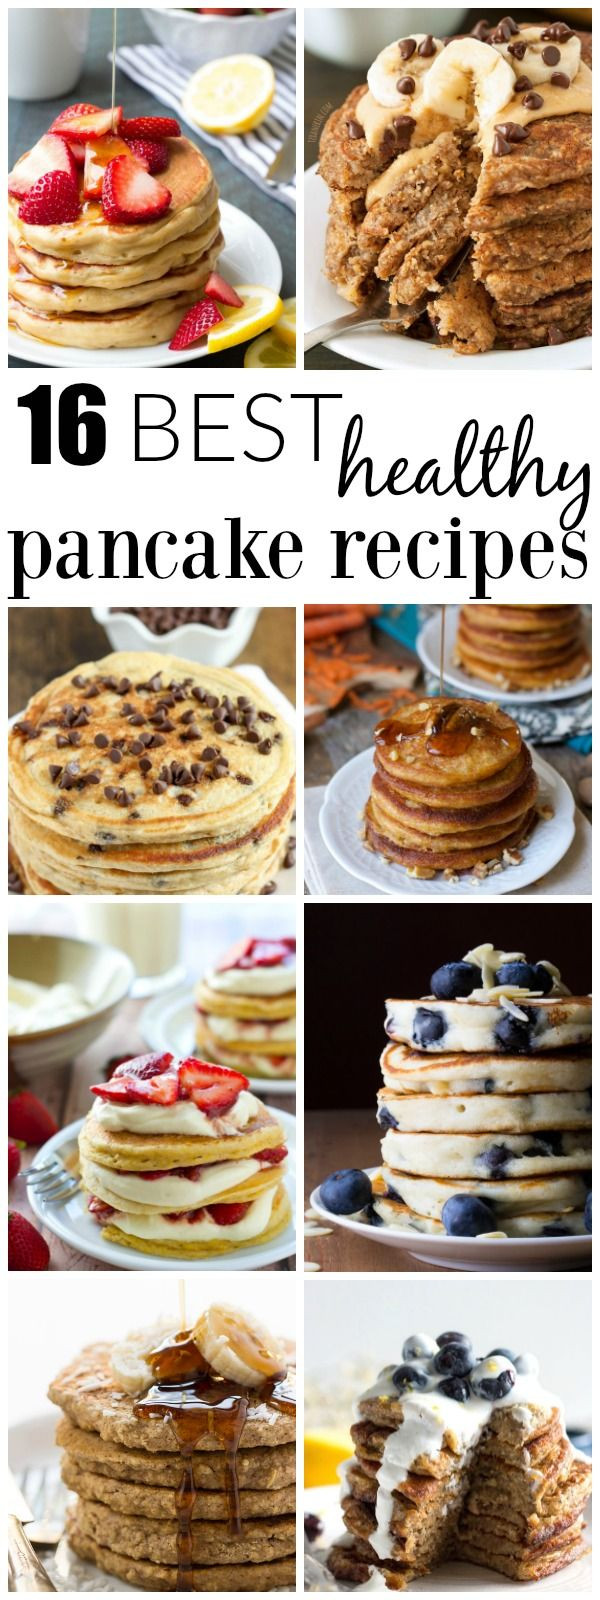 Easy Healthy Pancakes  The best healthy pancake recipes perfect for a weekend